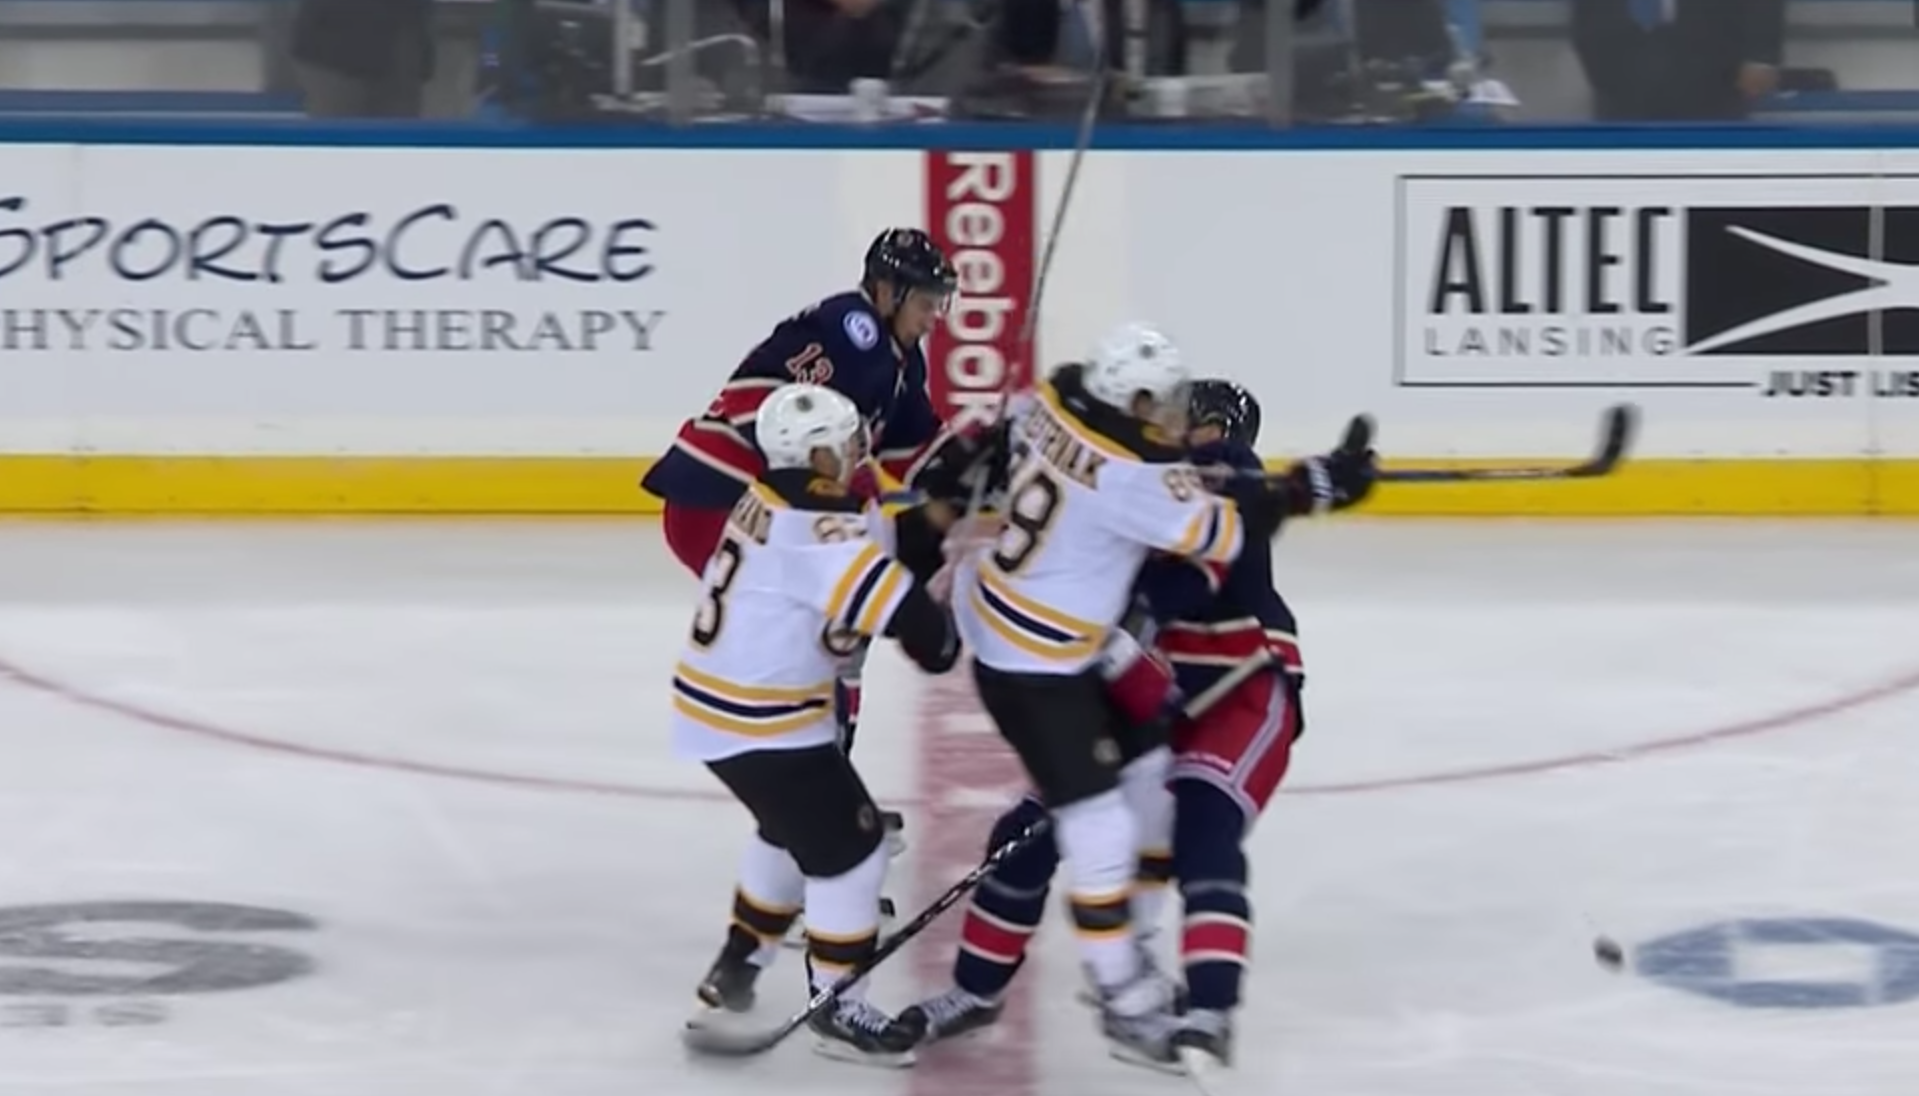 Pastrnak-Girardi-charge-NHL